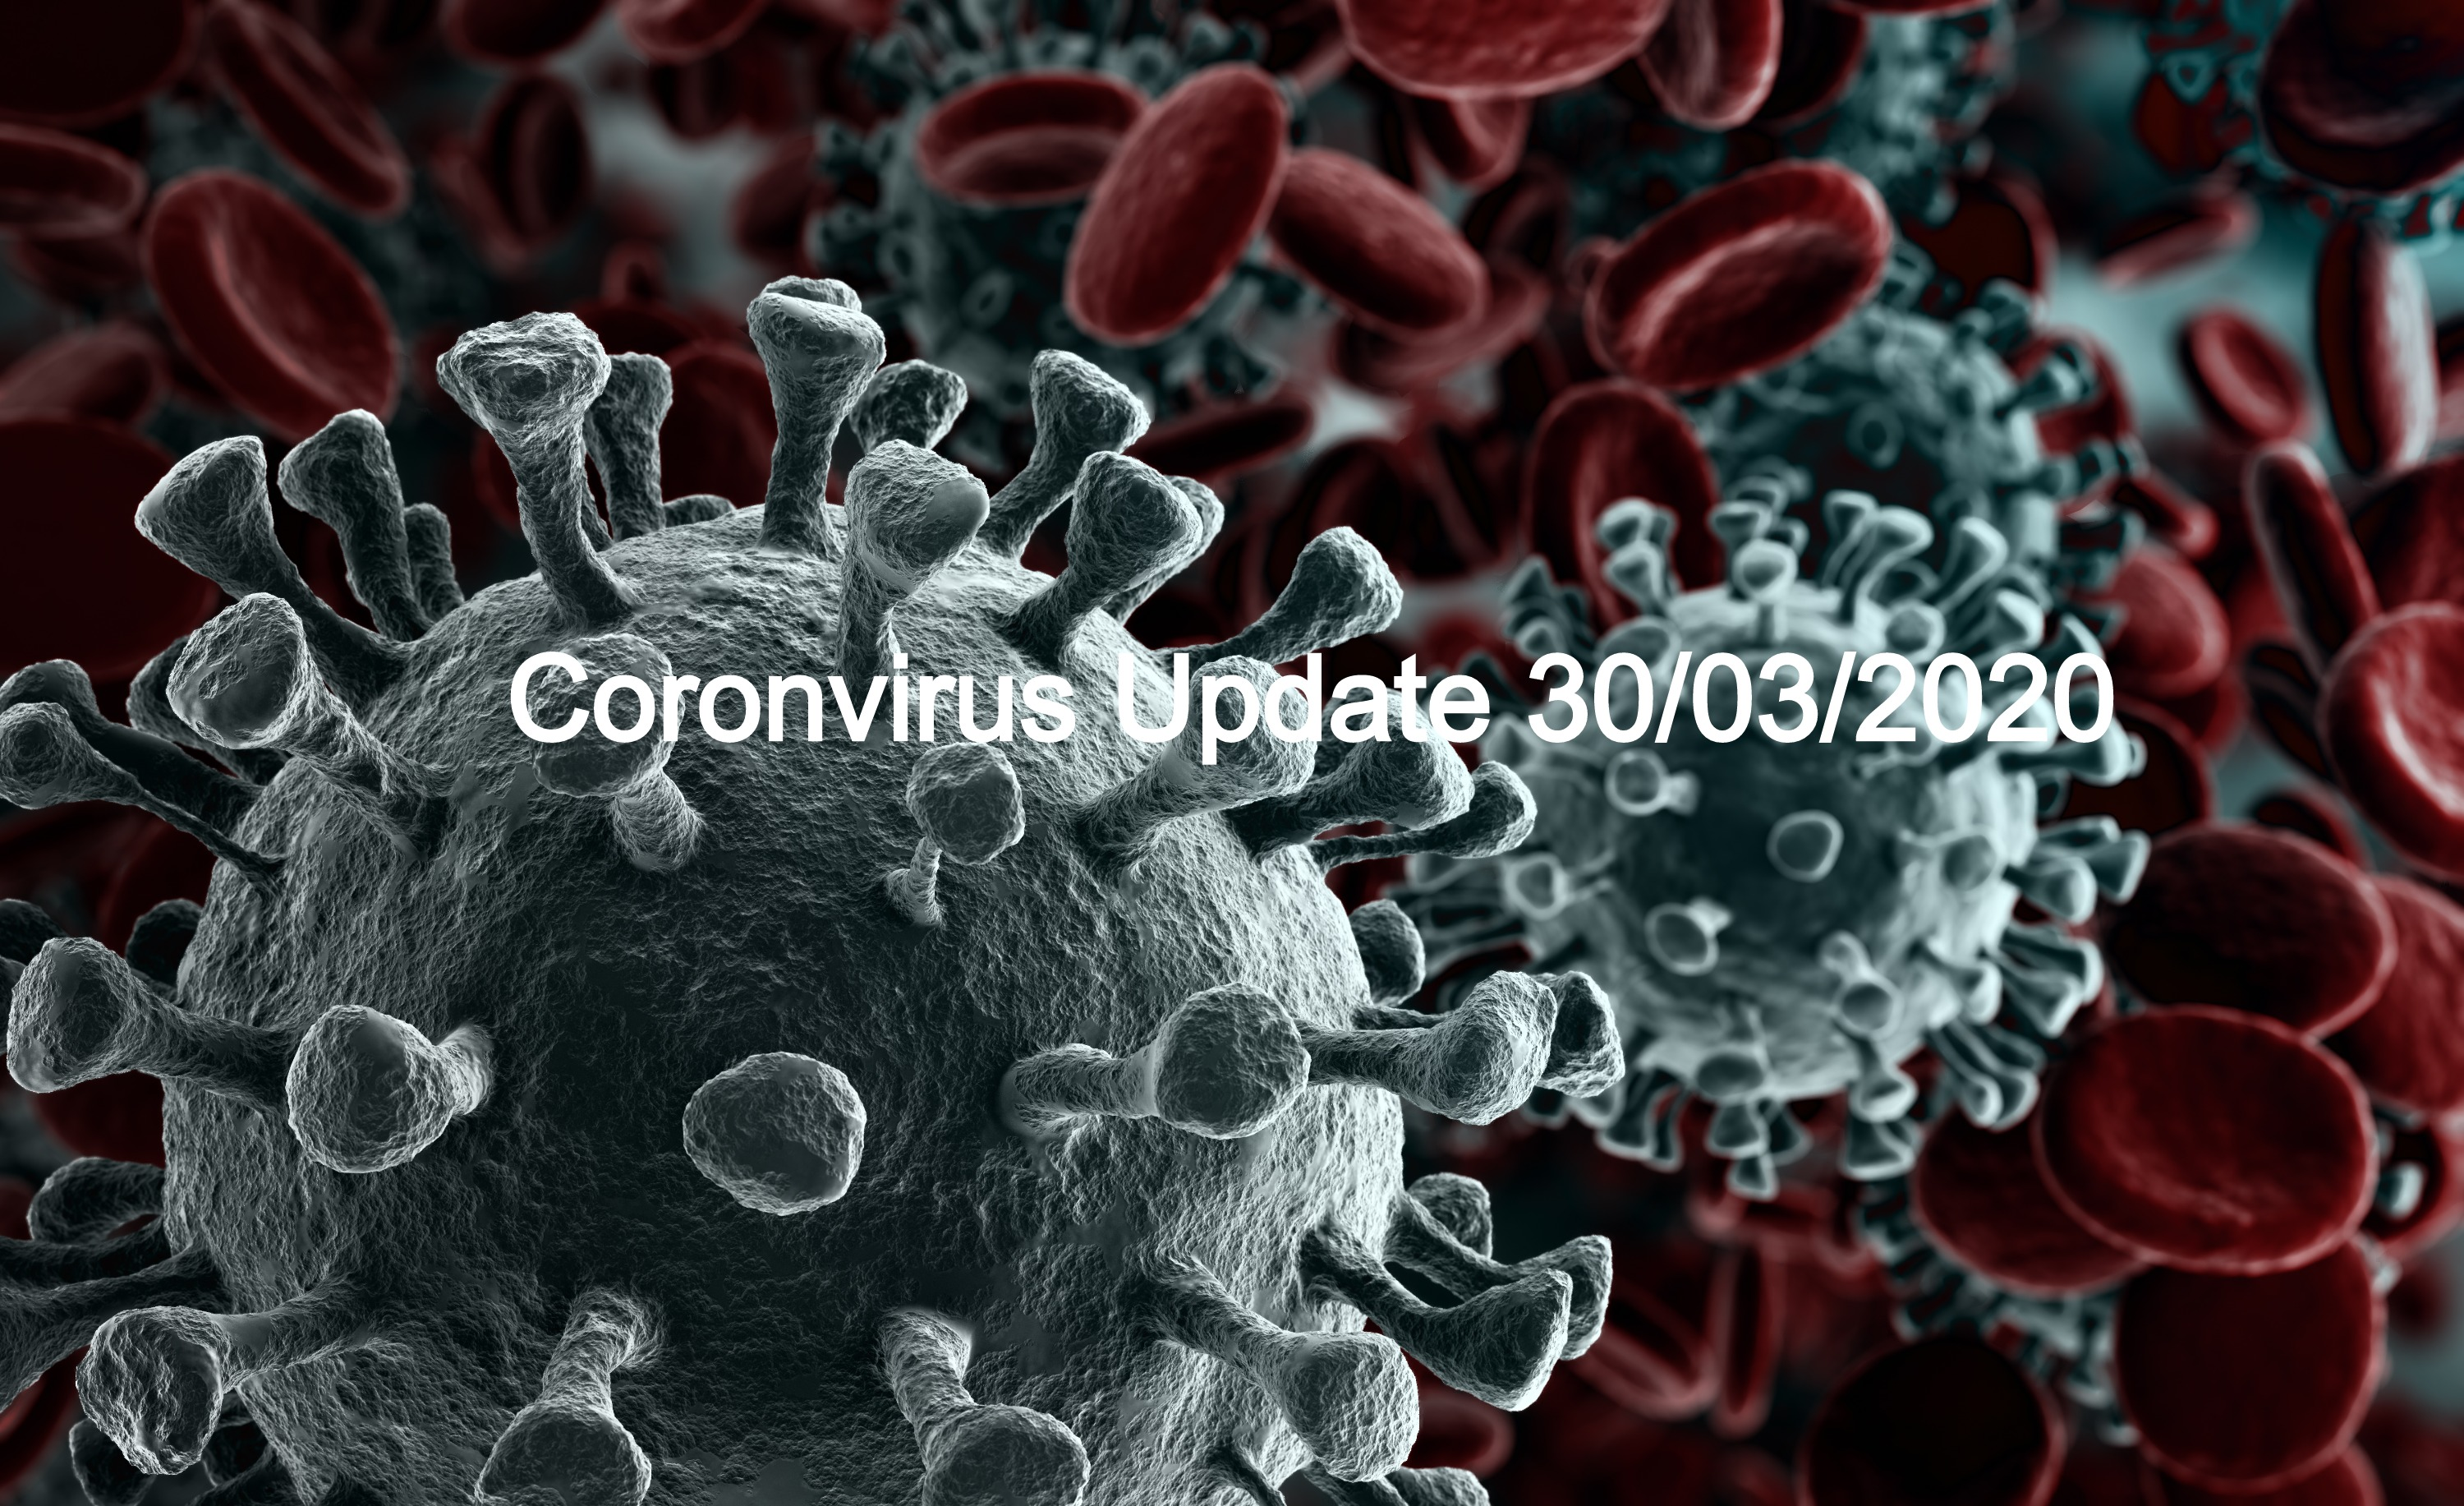 Copy%20of%20Coronavirus%202019-nCov%20no